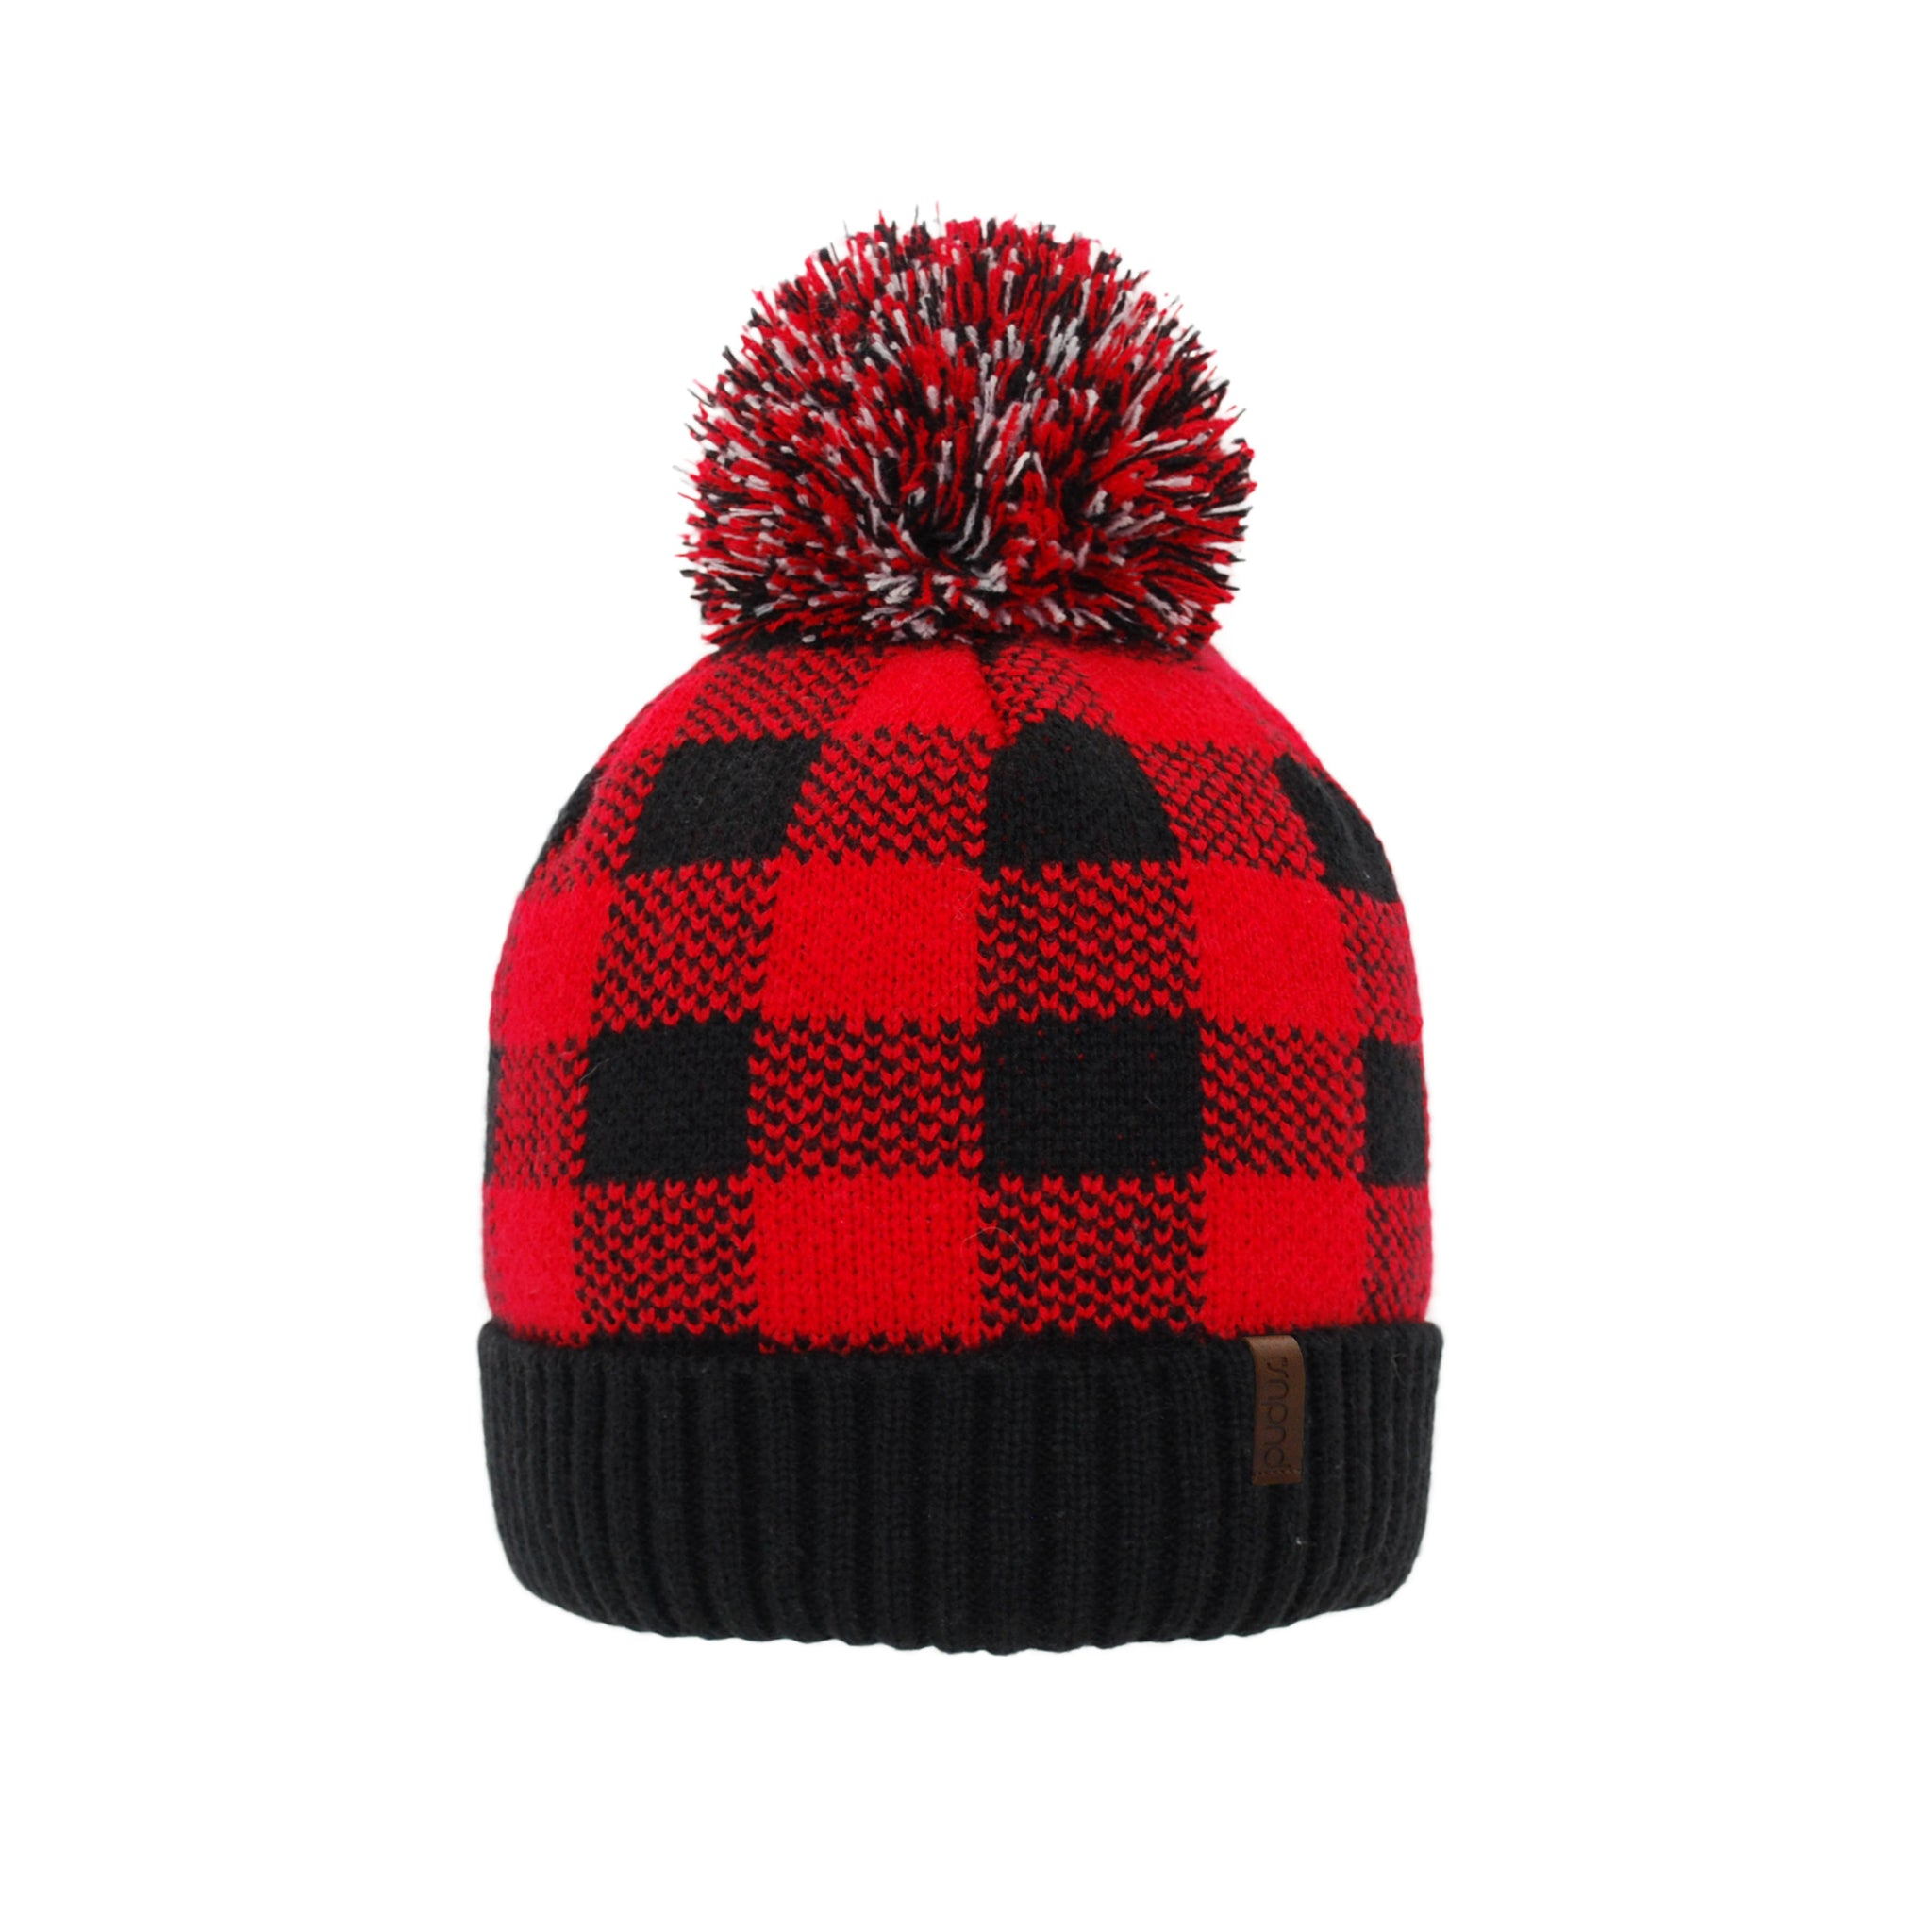 Lumberjack Red Pom Pom Beanie Hat - Warm Winter Hat for Men & Women with Furry Sherpa Fleece Lining